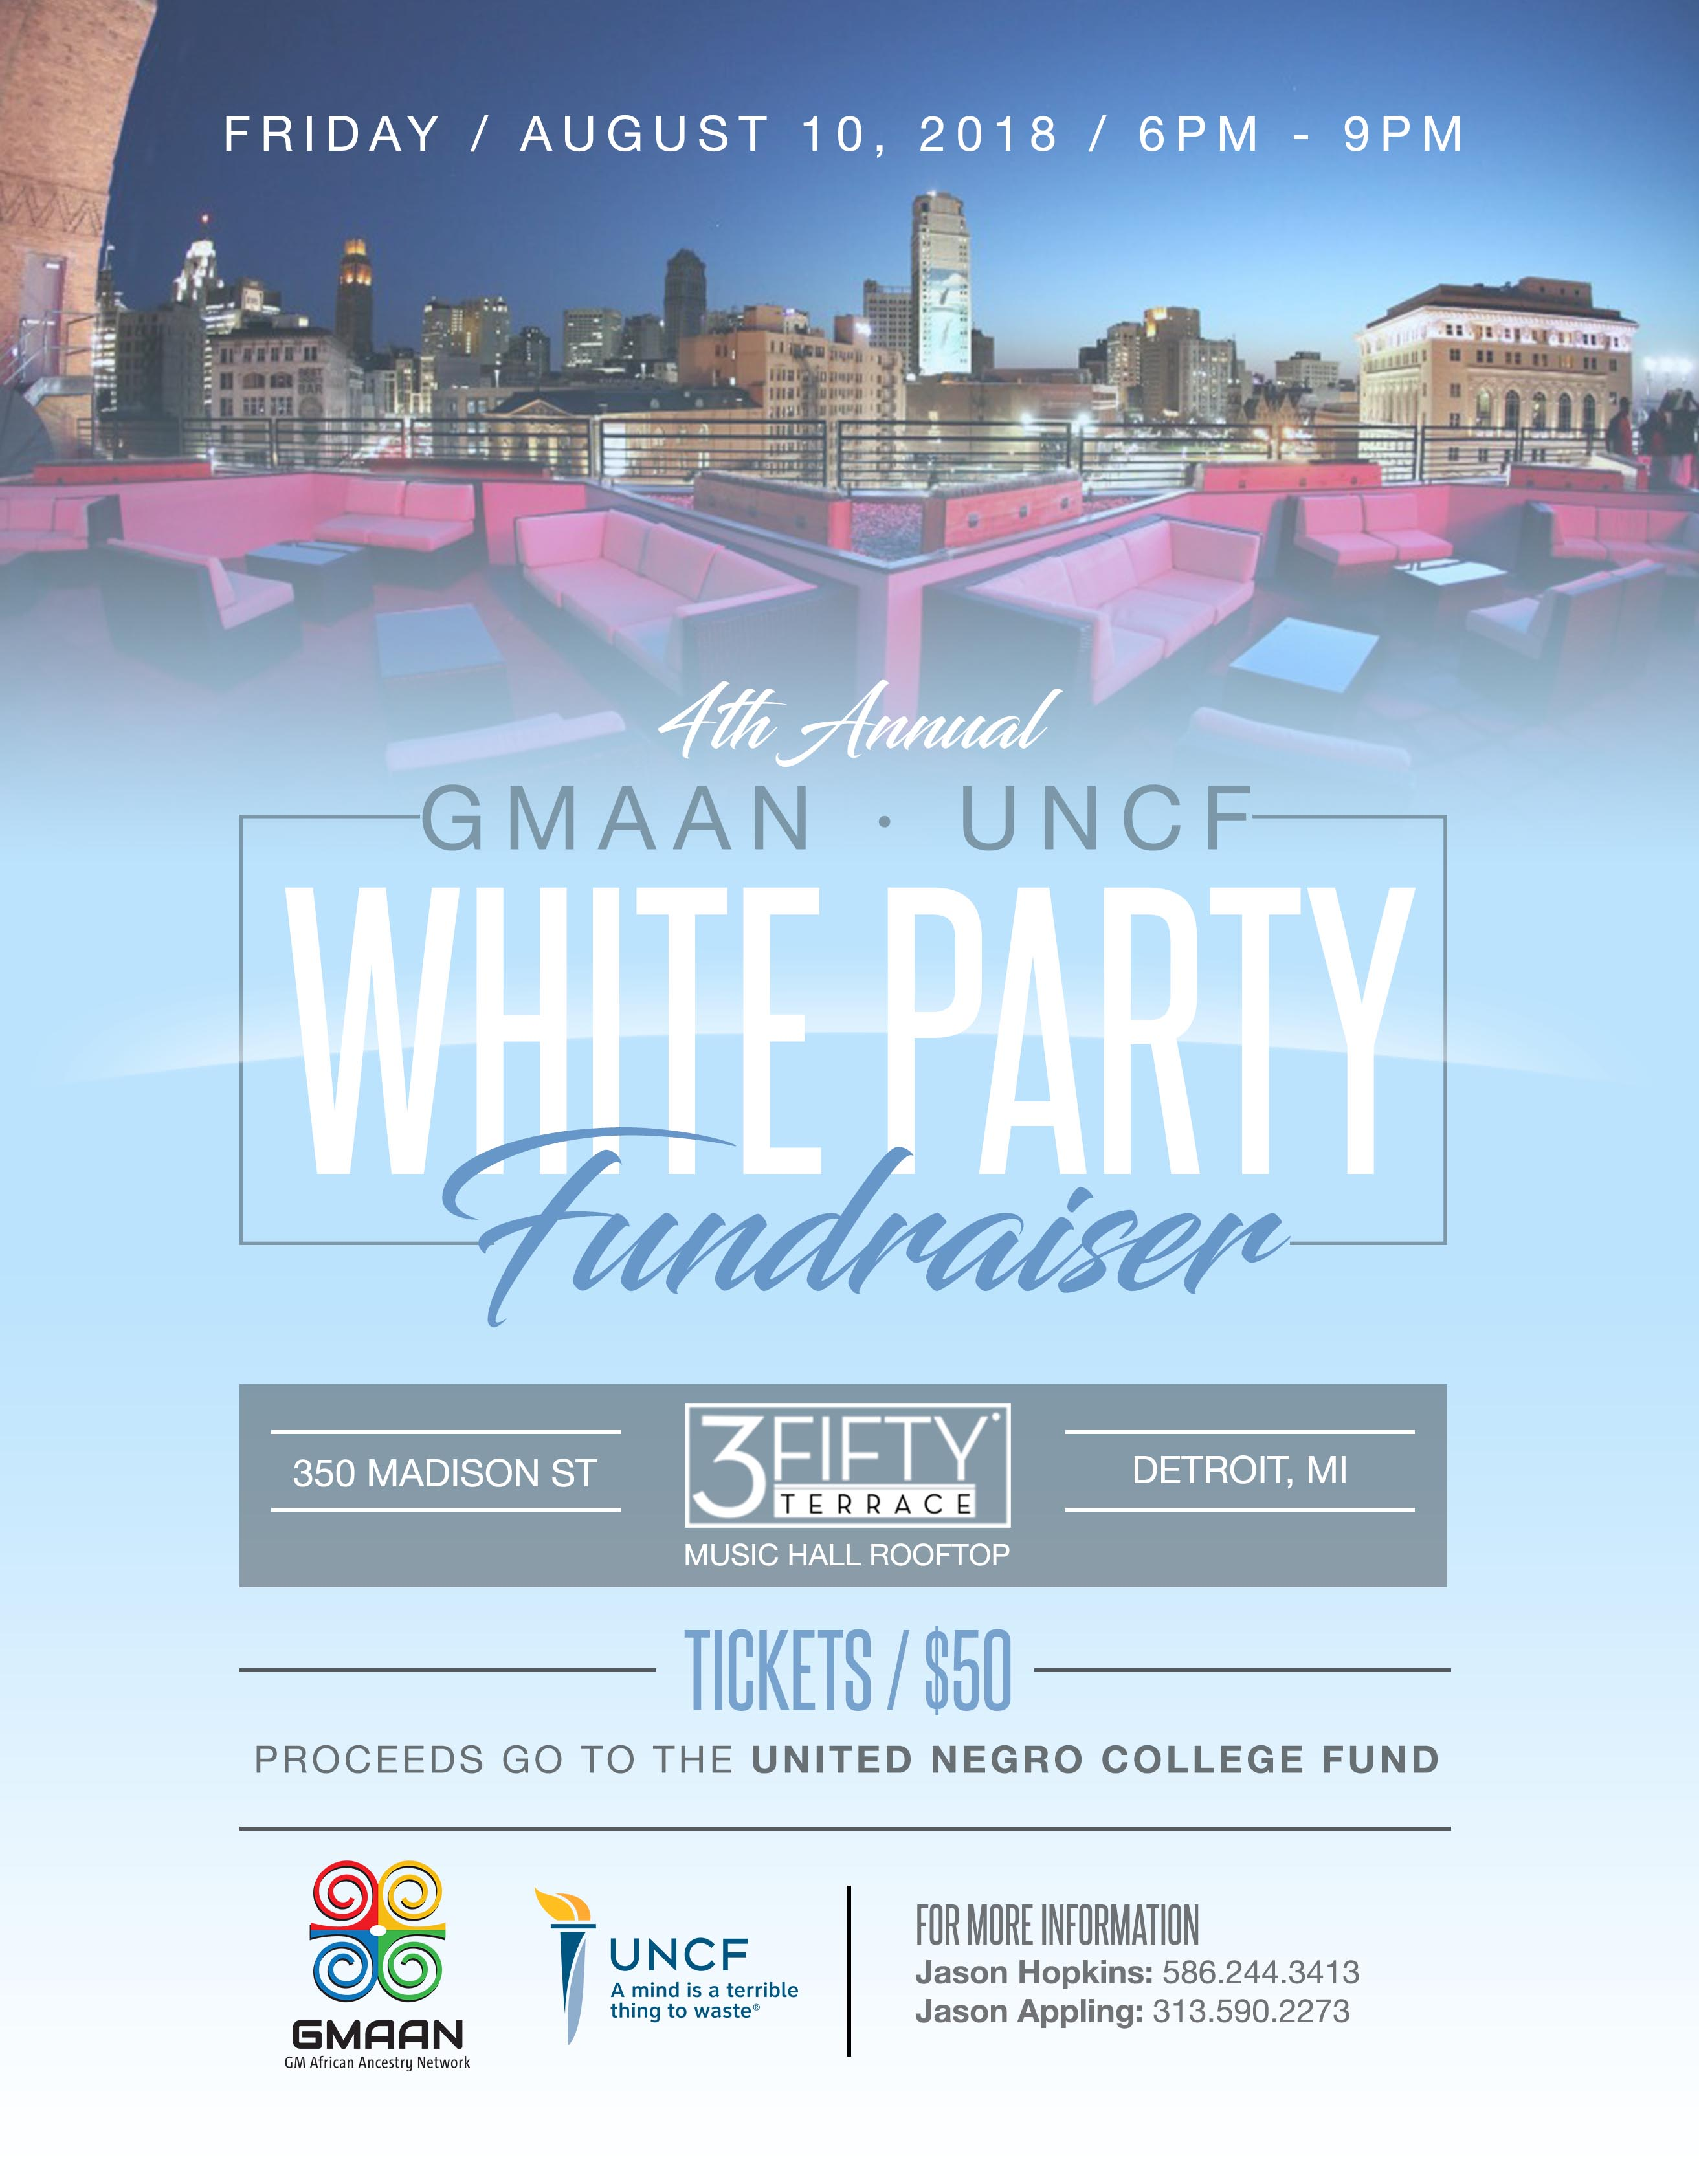 UNCF WHITE PARTY